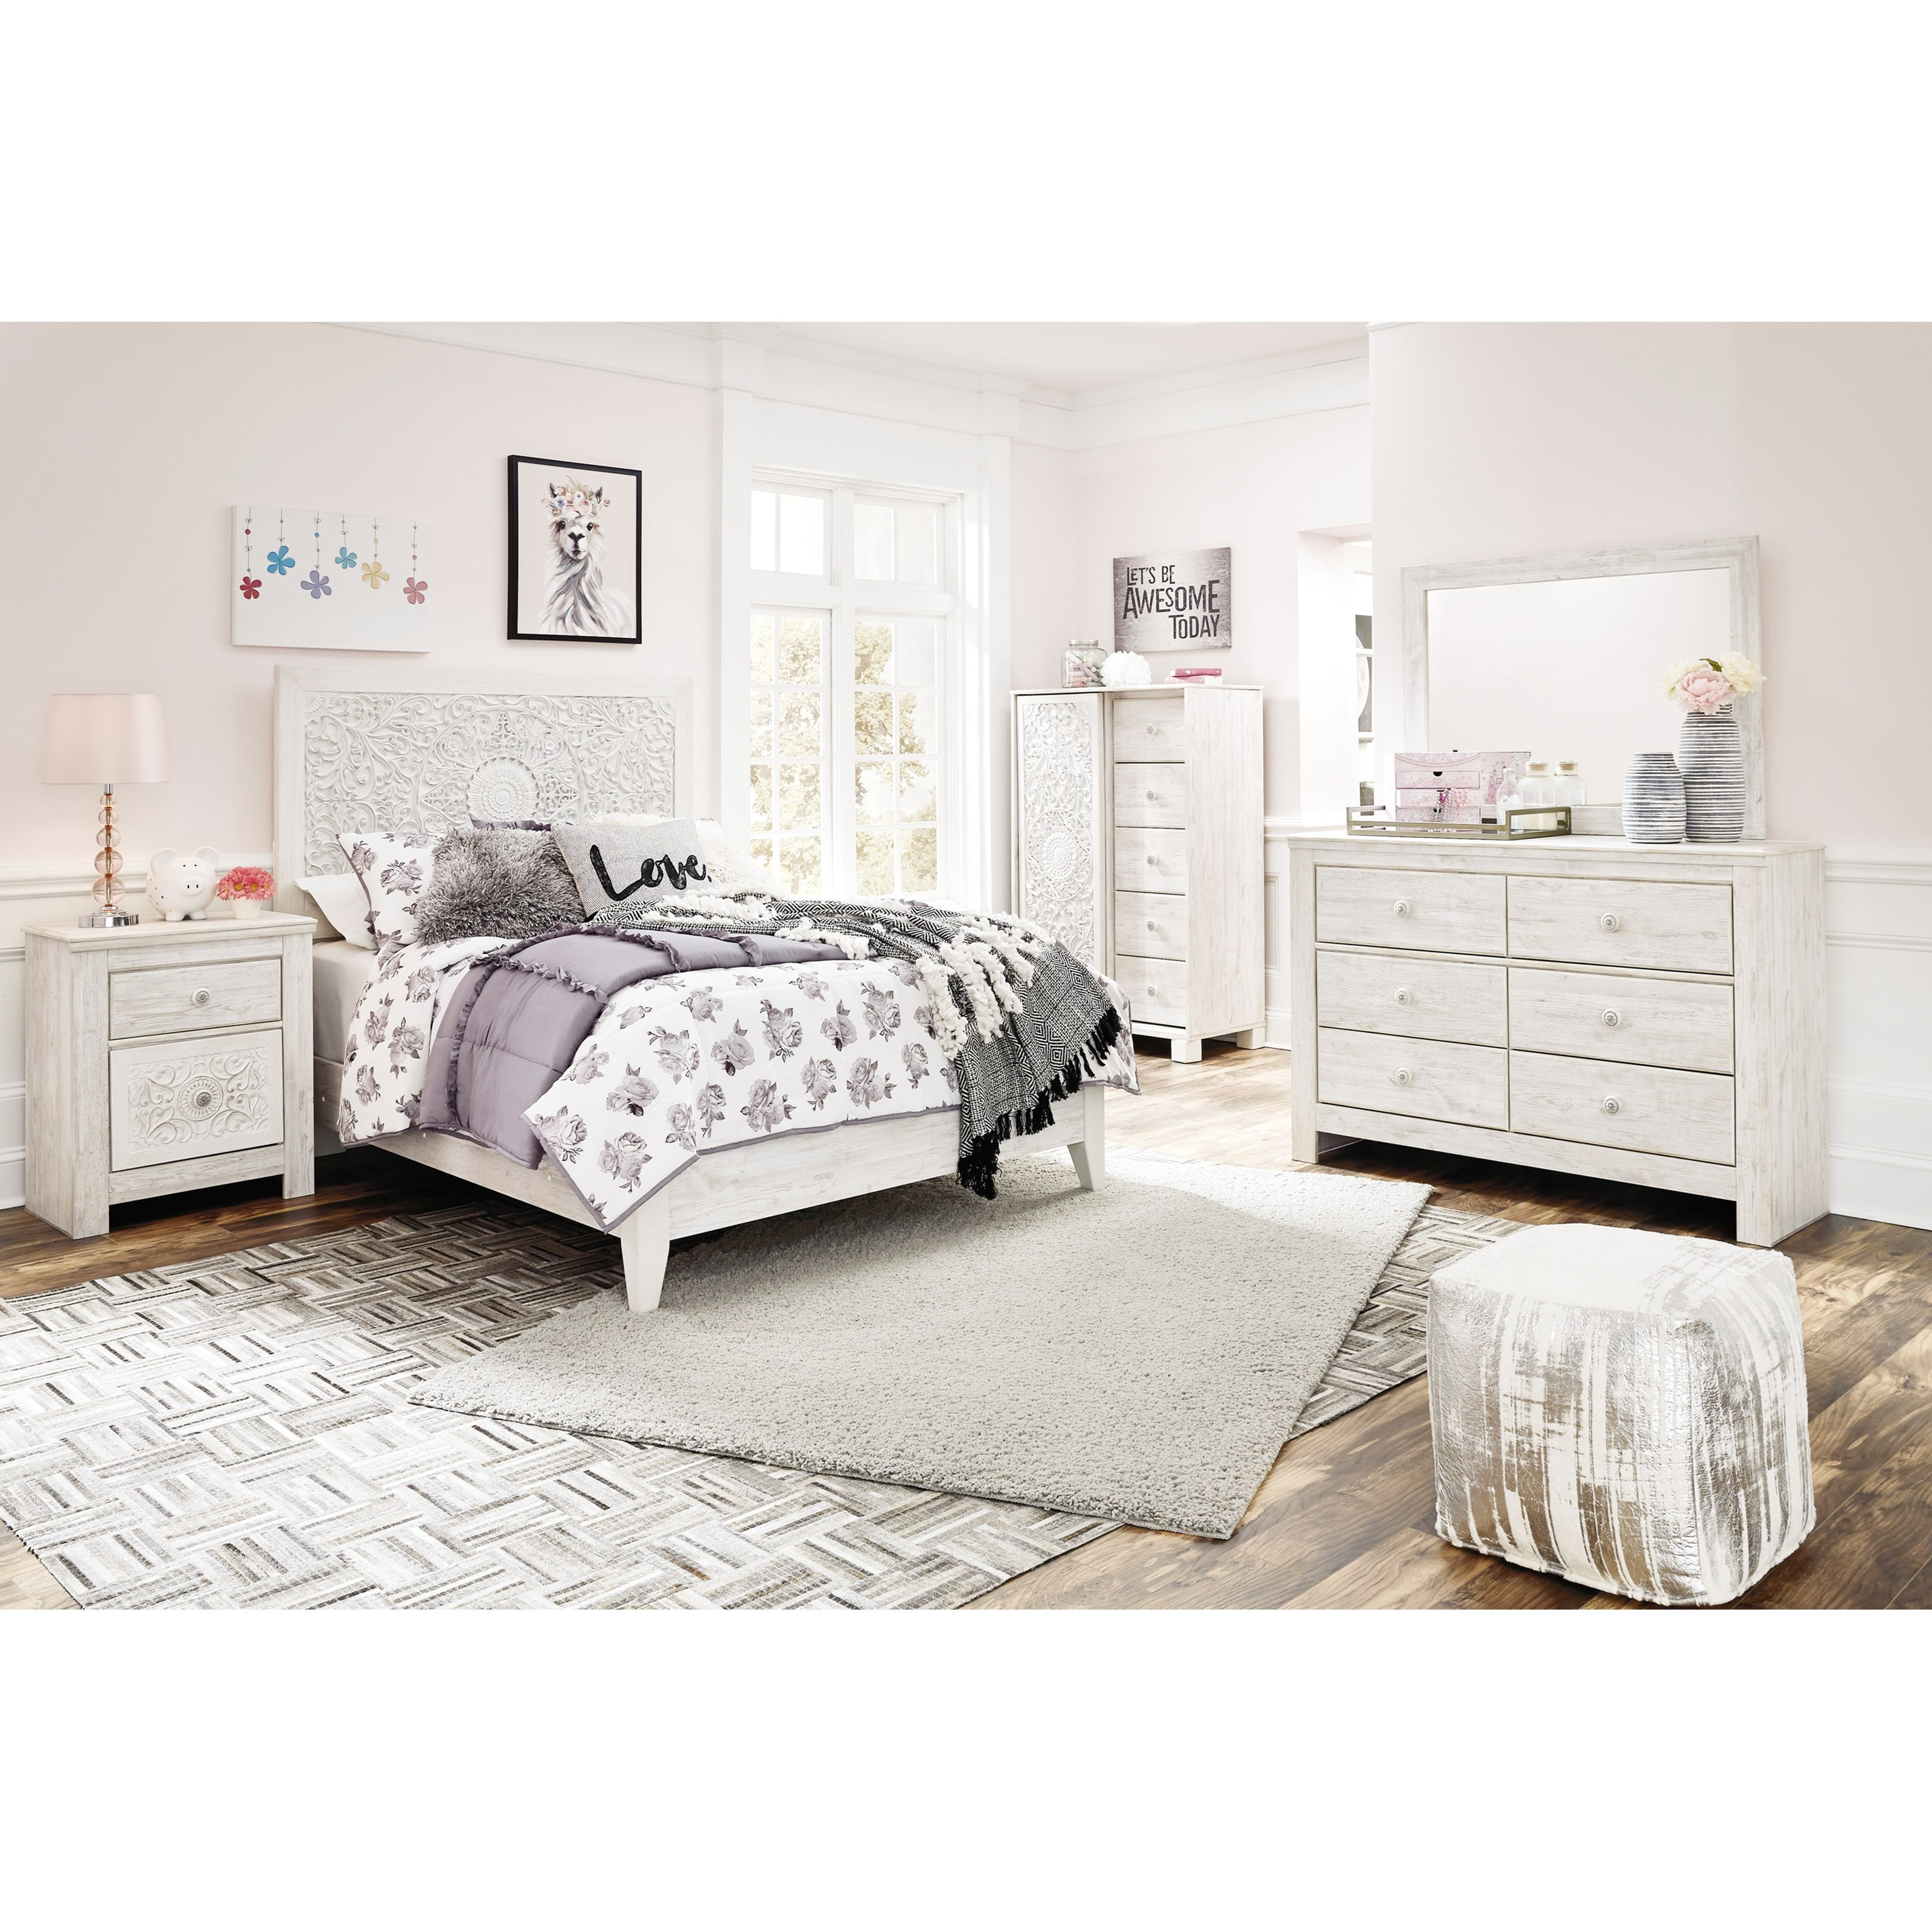 Paxberry Full Bedroom Group by Signature Design by Ashley at Northeast Factory Direct